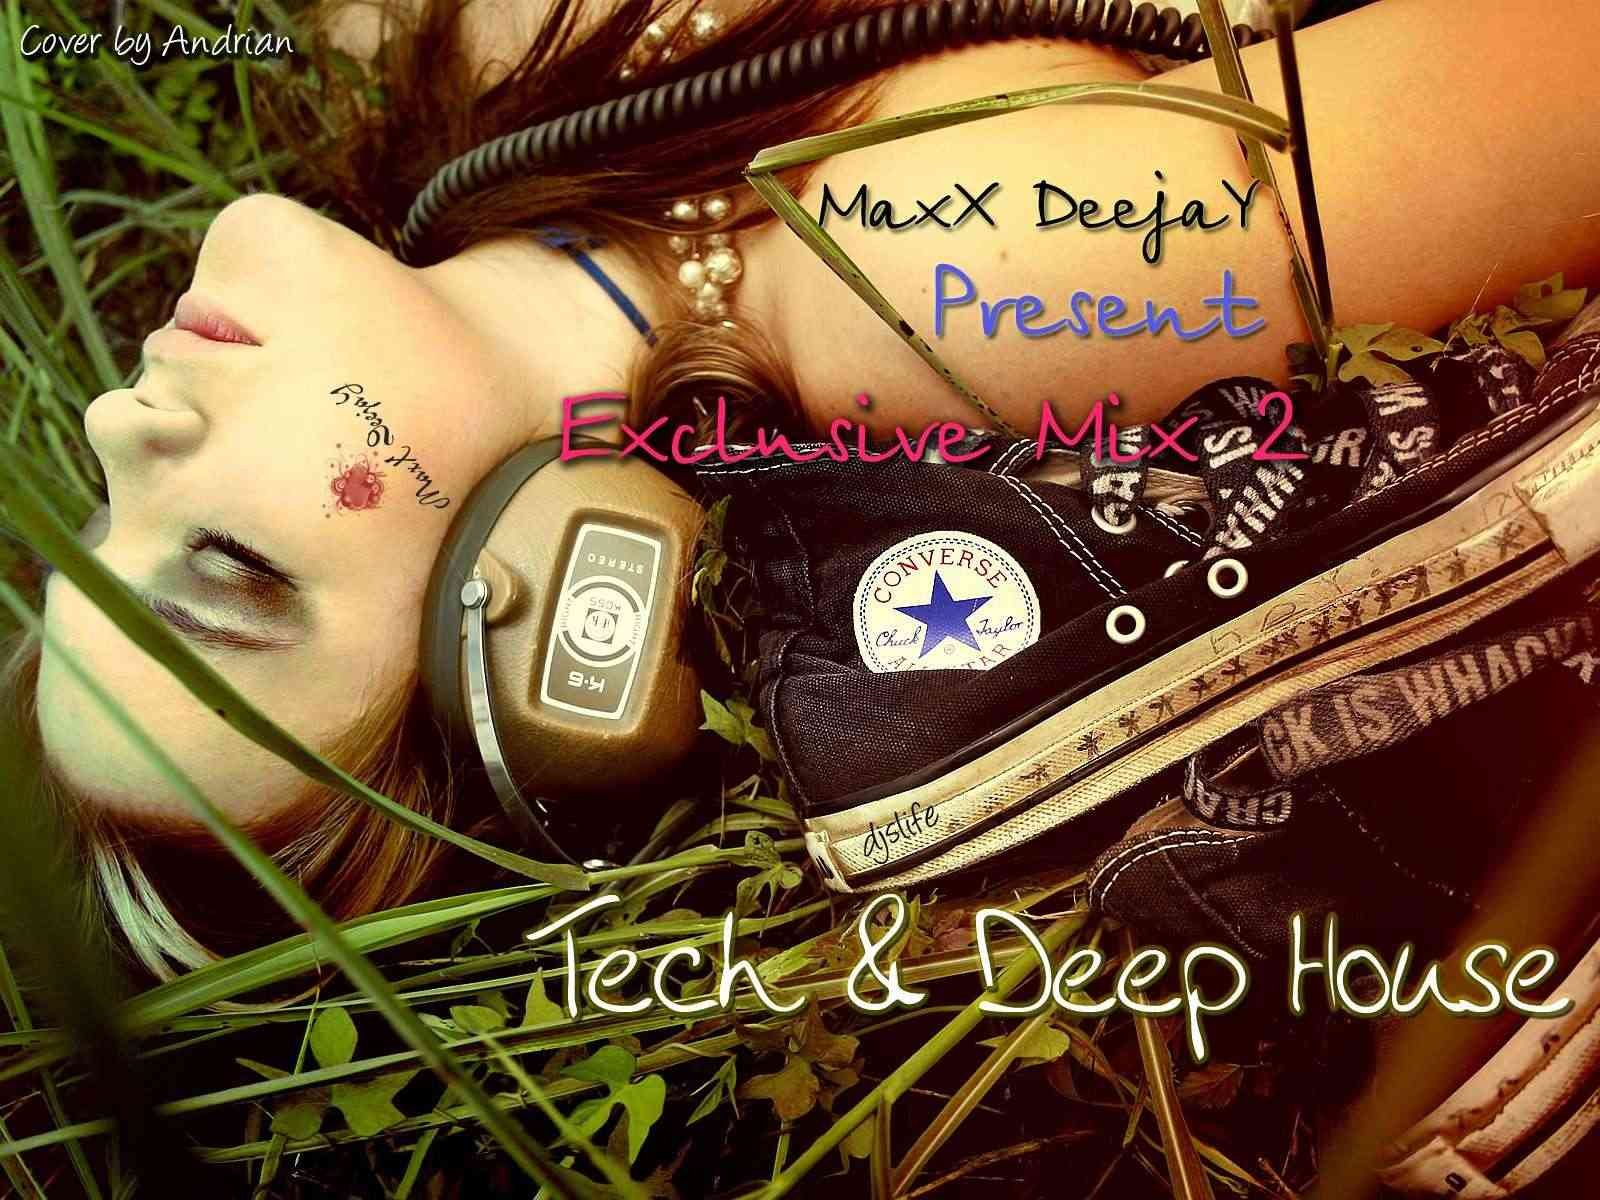 Maxx DeejaY - TeXhouse Grooves 2 Exclusive MiX